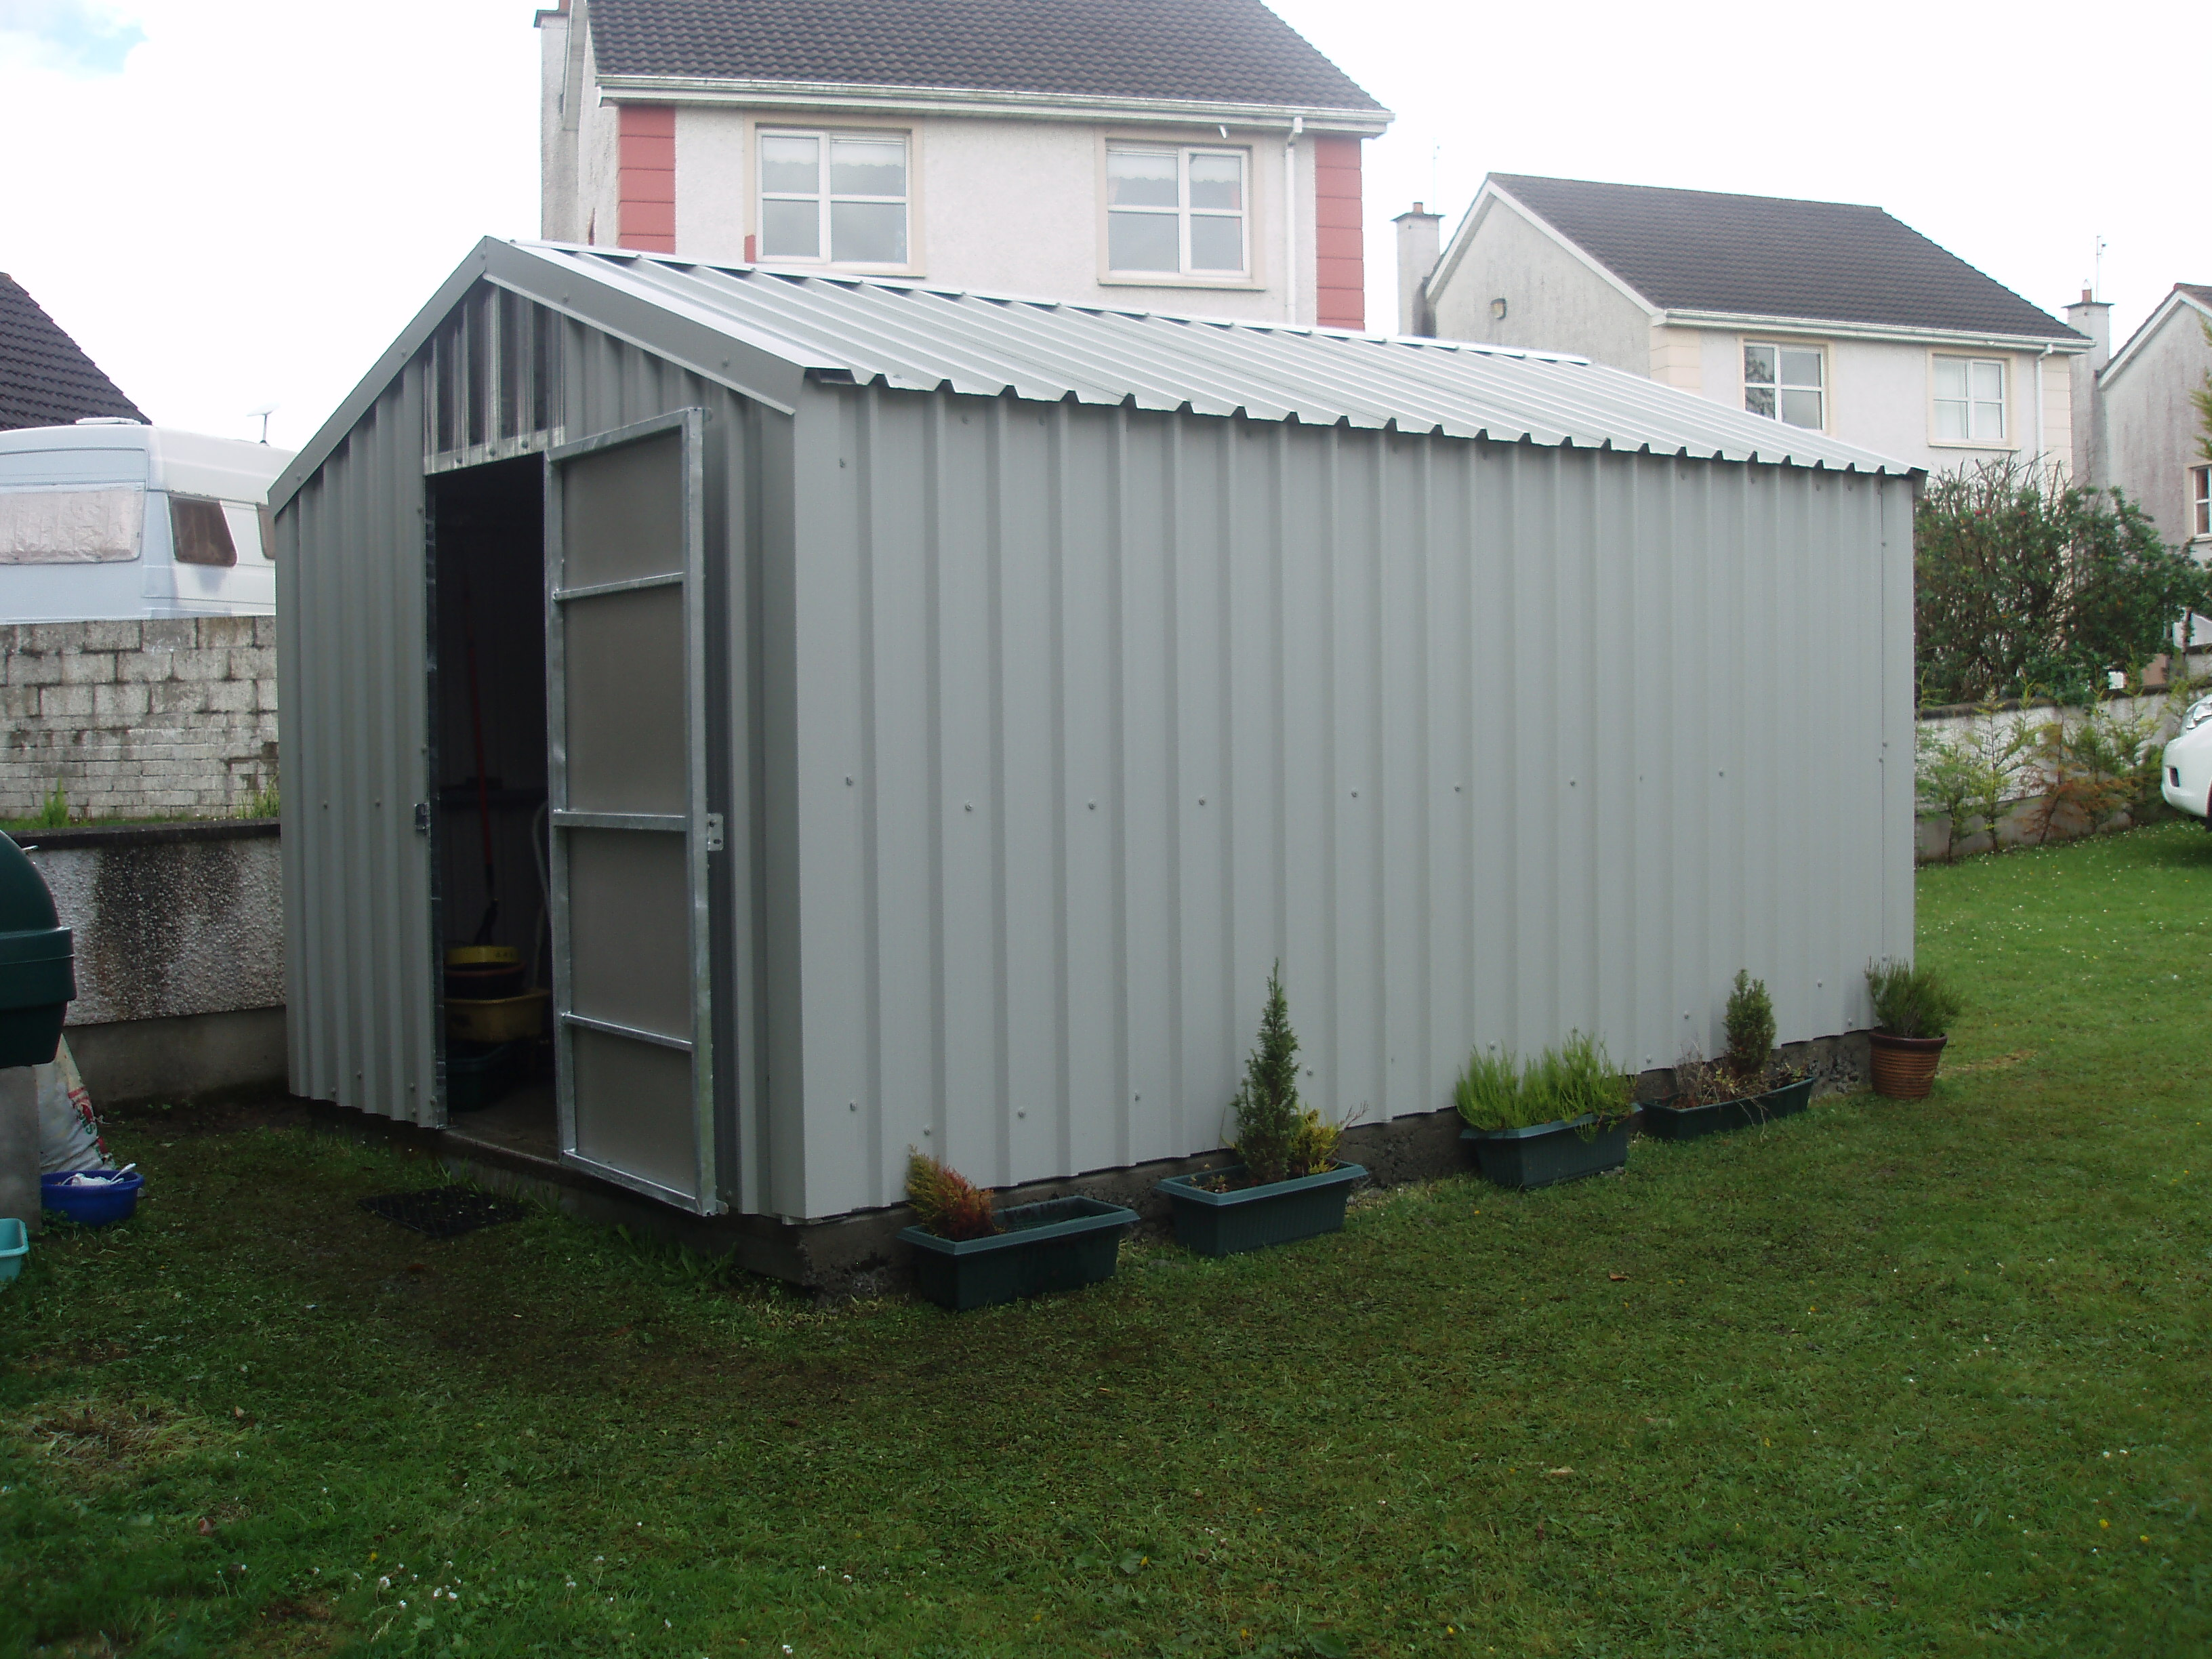 garages sale wellington portable structures storage kansas by carports garden for the and sheds ks outdoor